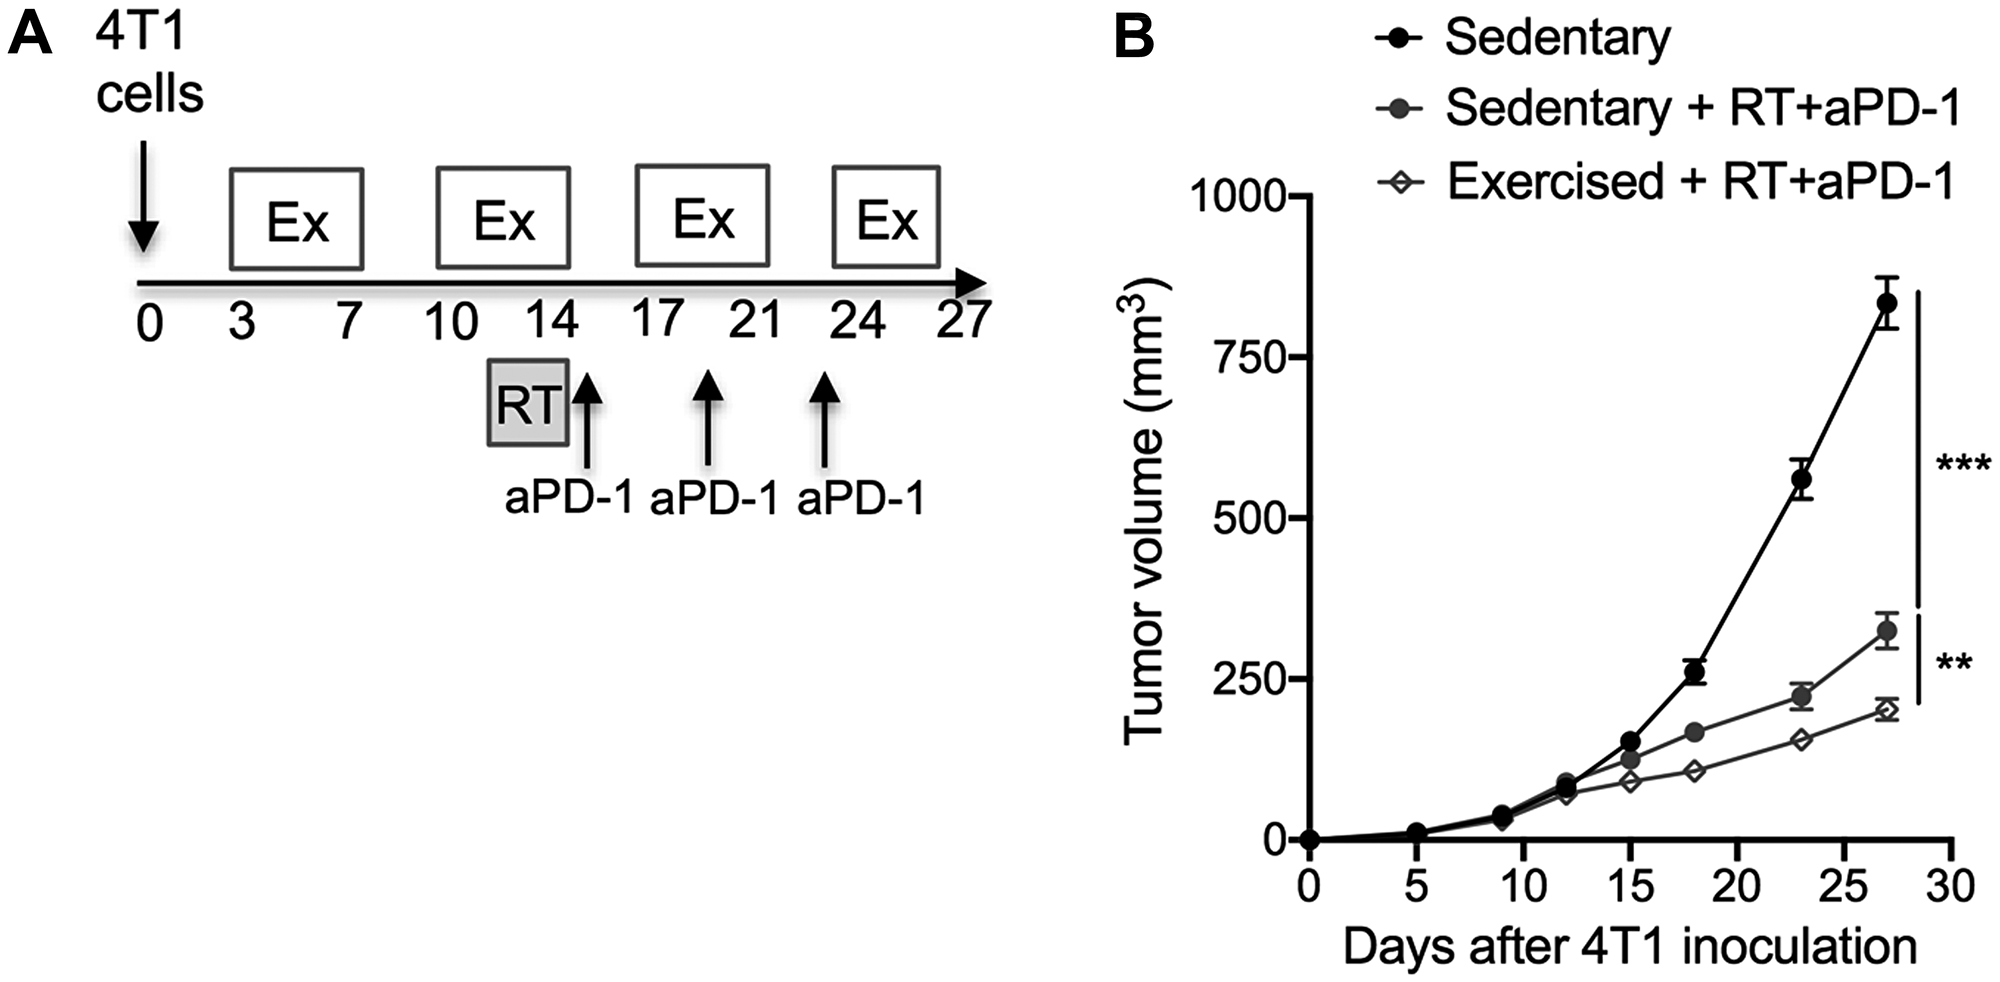 Exercise training as an adjunct therapy potentiates anti-tumor immunity induced by radiotherapy and immunotherapy combinations.